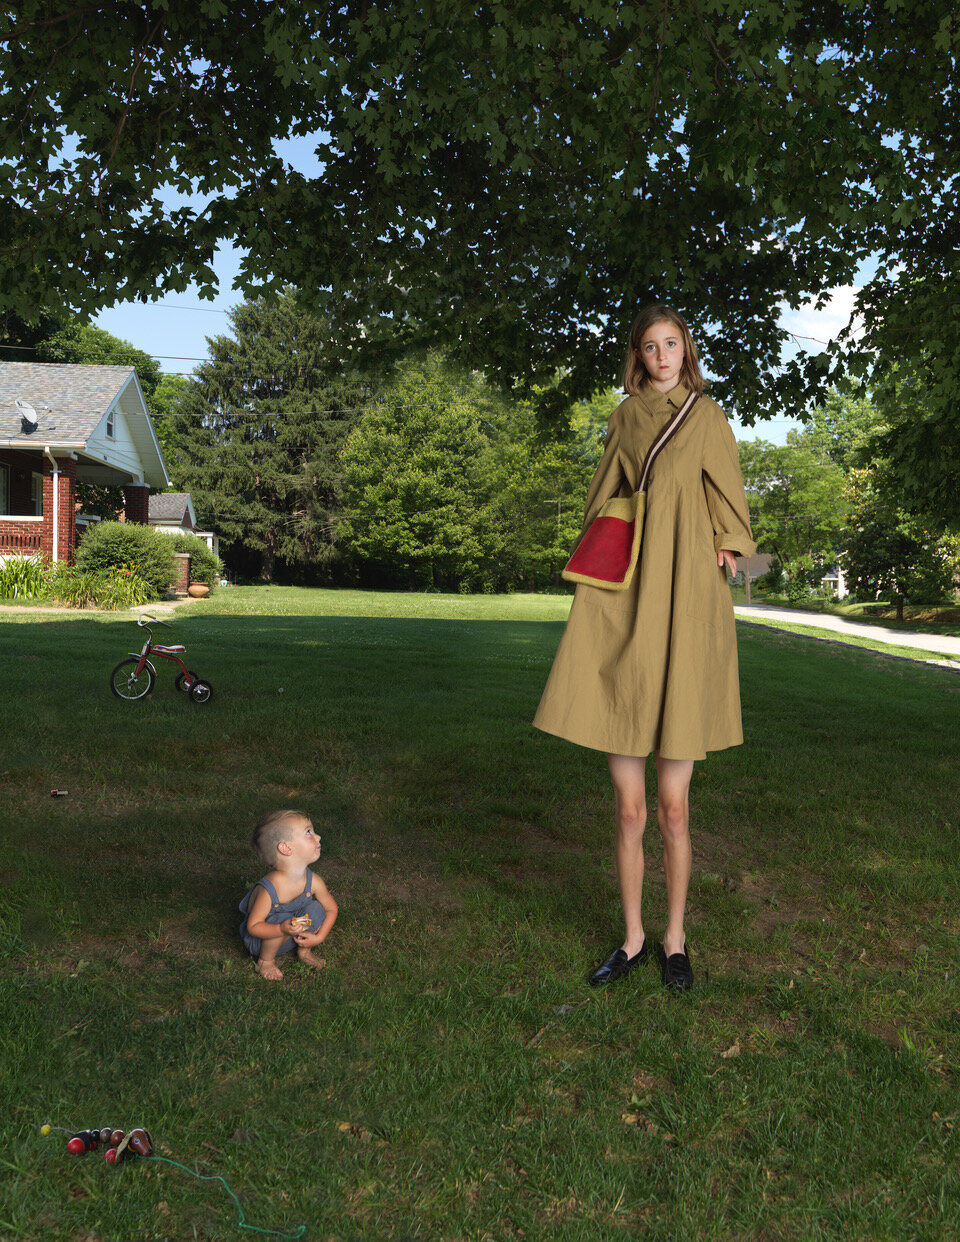 """Julie Blackmon, Tall Girl, 2021, archival pigment print, 26"""" x 32.5"""", 35.75"""" x 45"""", 44"""" x 55.75"""", editions of 7, price on request"""